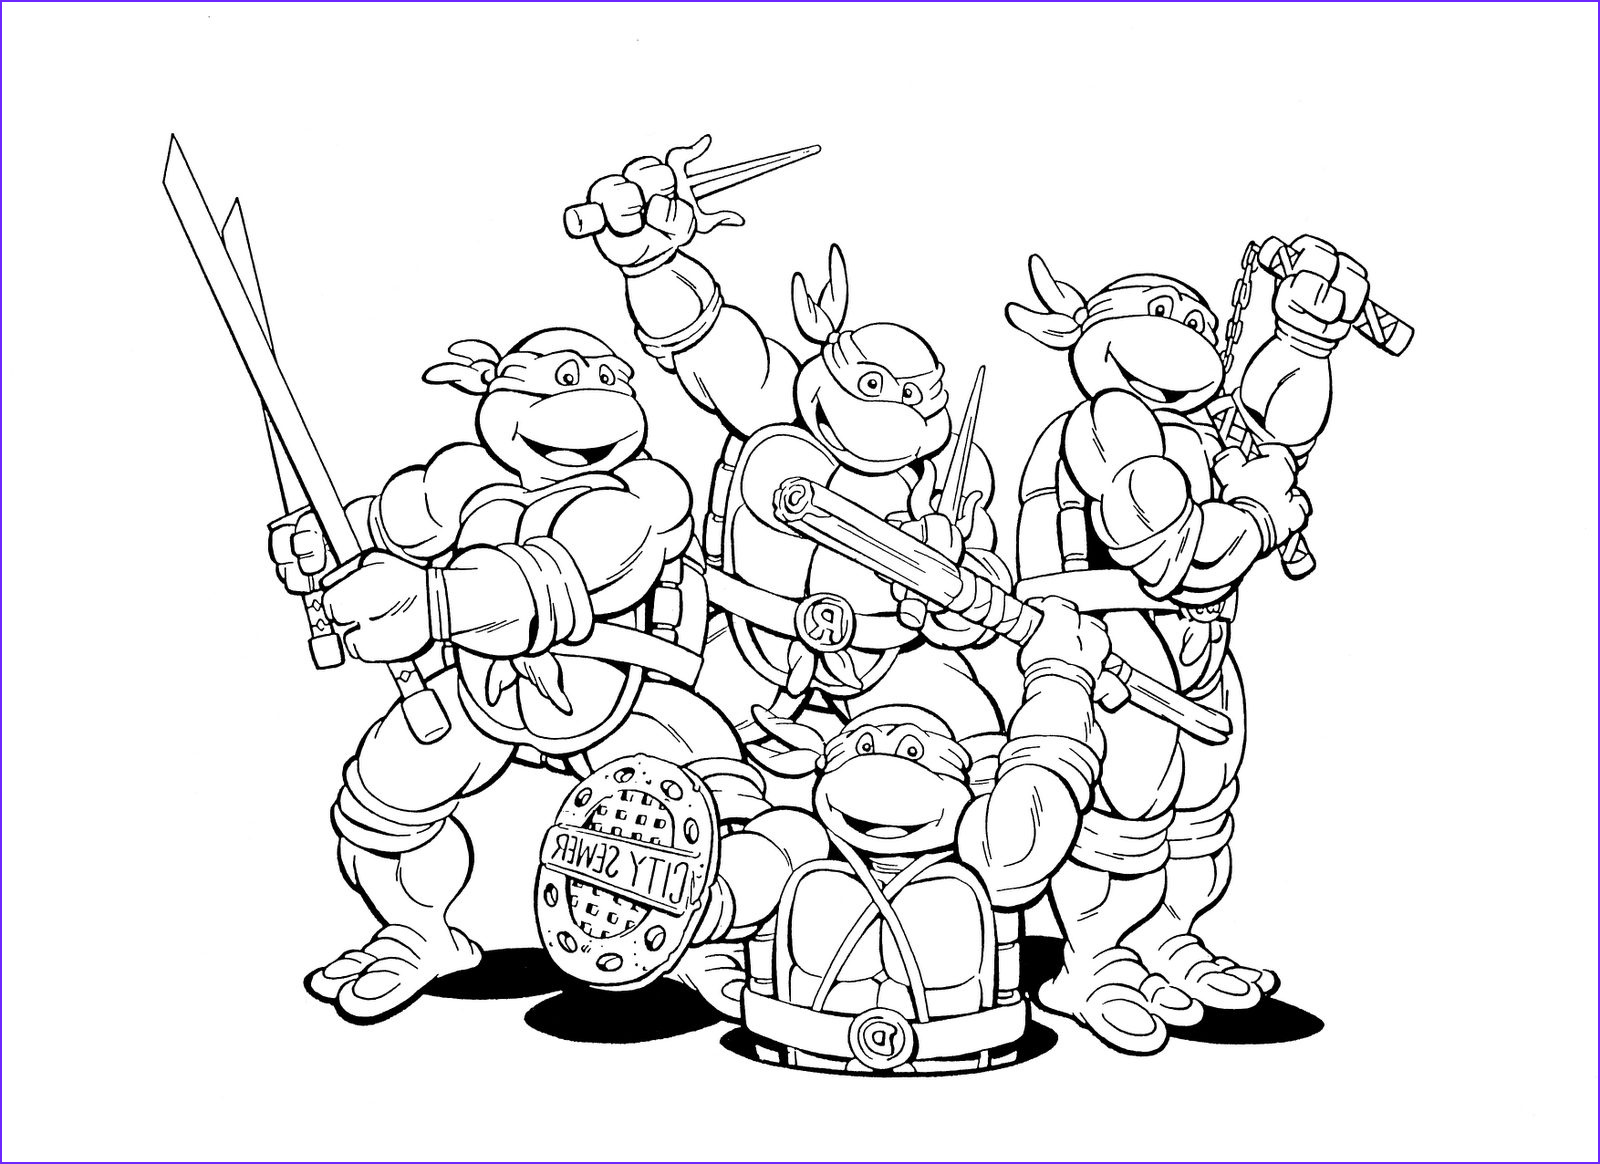 mutant ninja turtles coloring pages